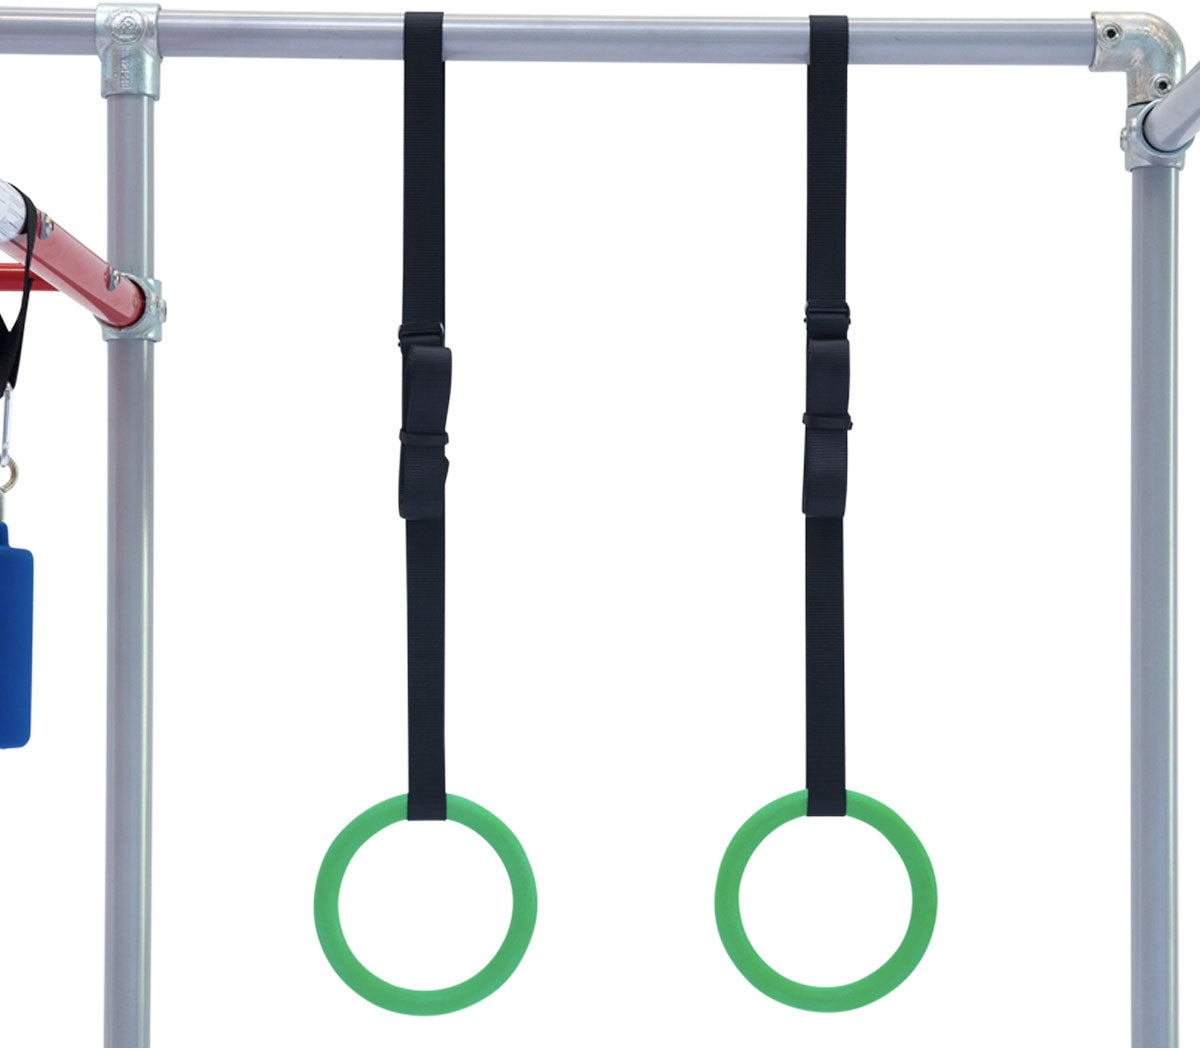 Funky Monkey Bars Roman Rings